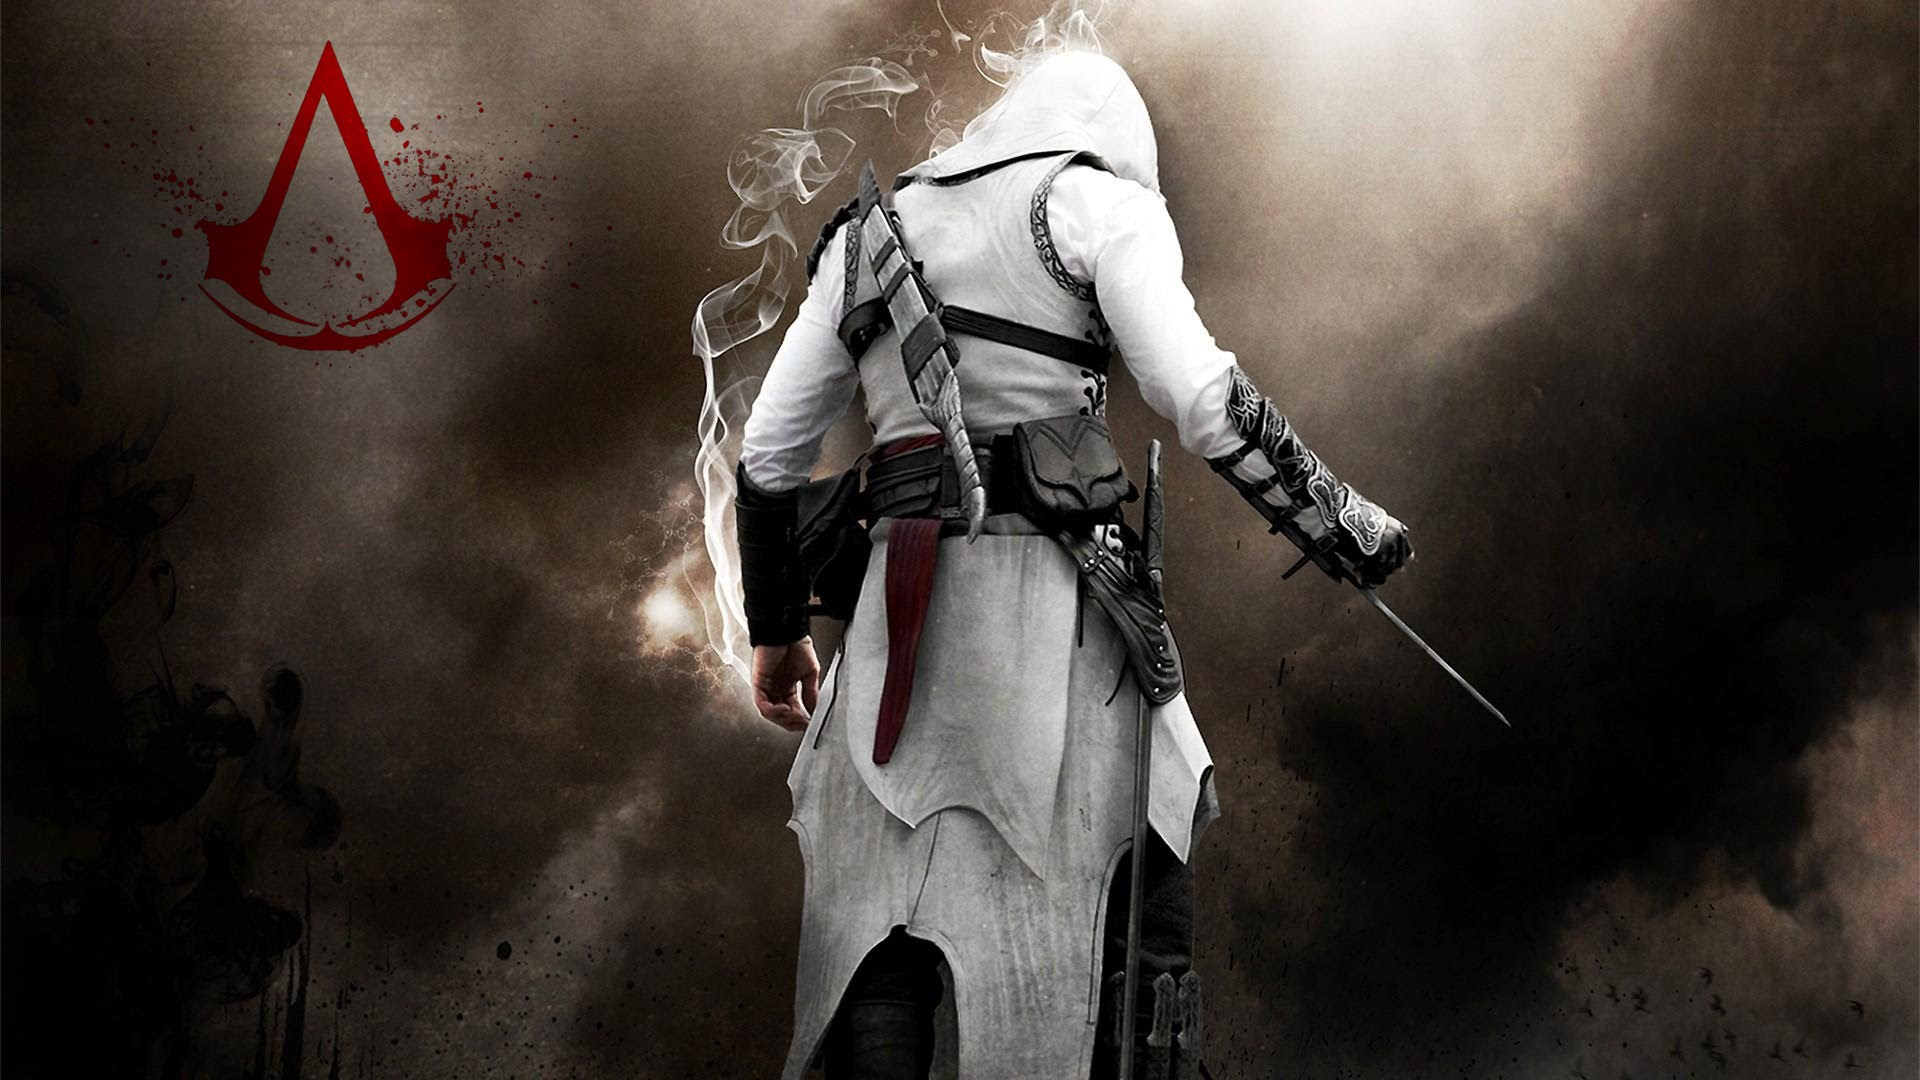 assassins creed movie - devgam.com